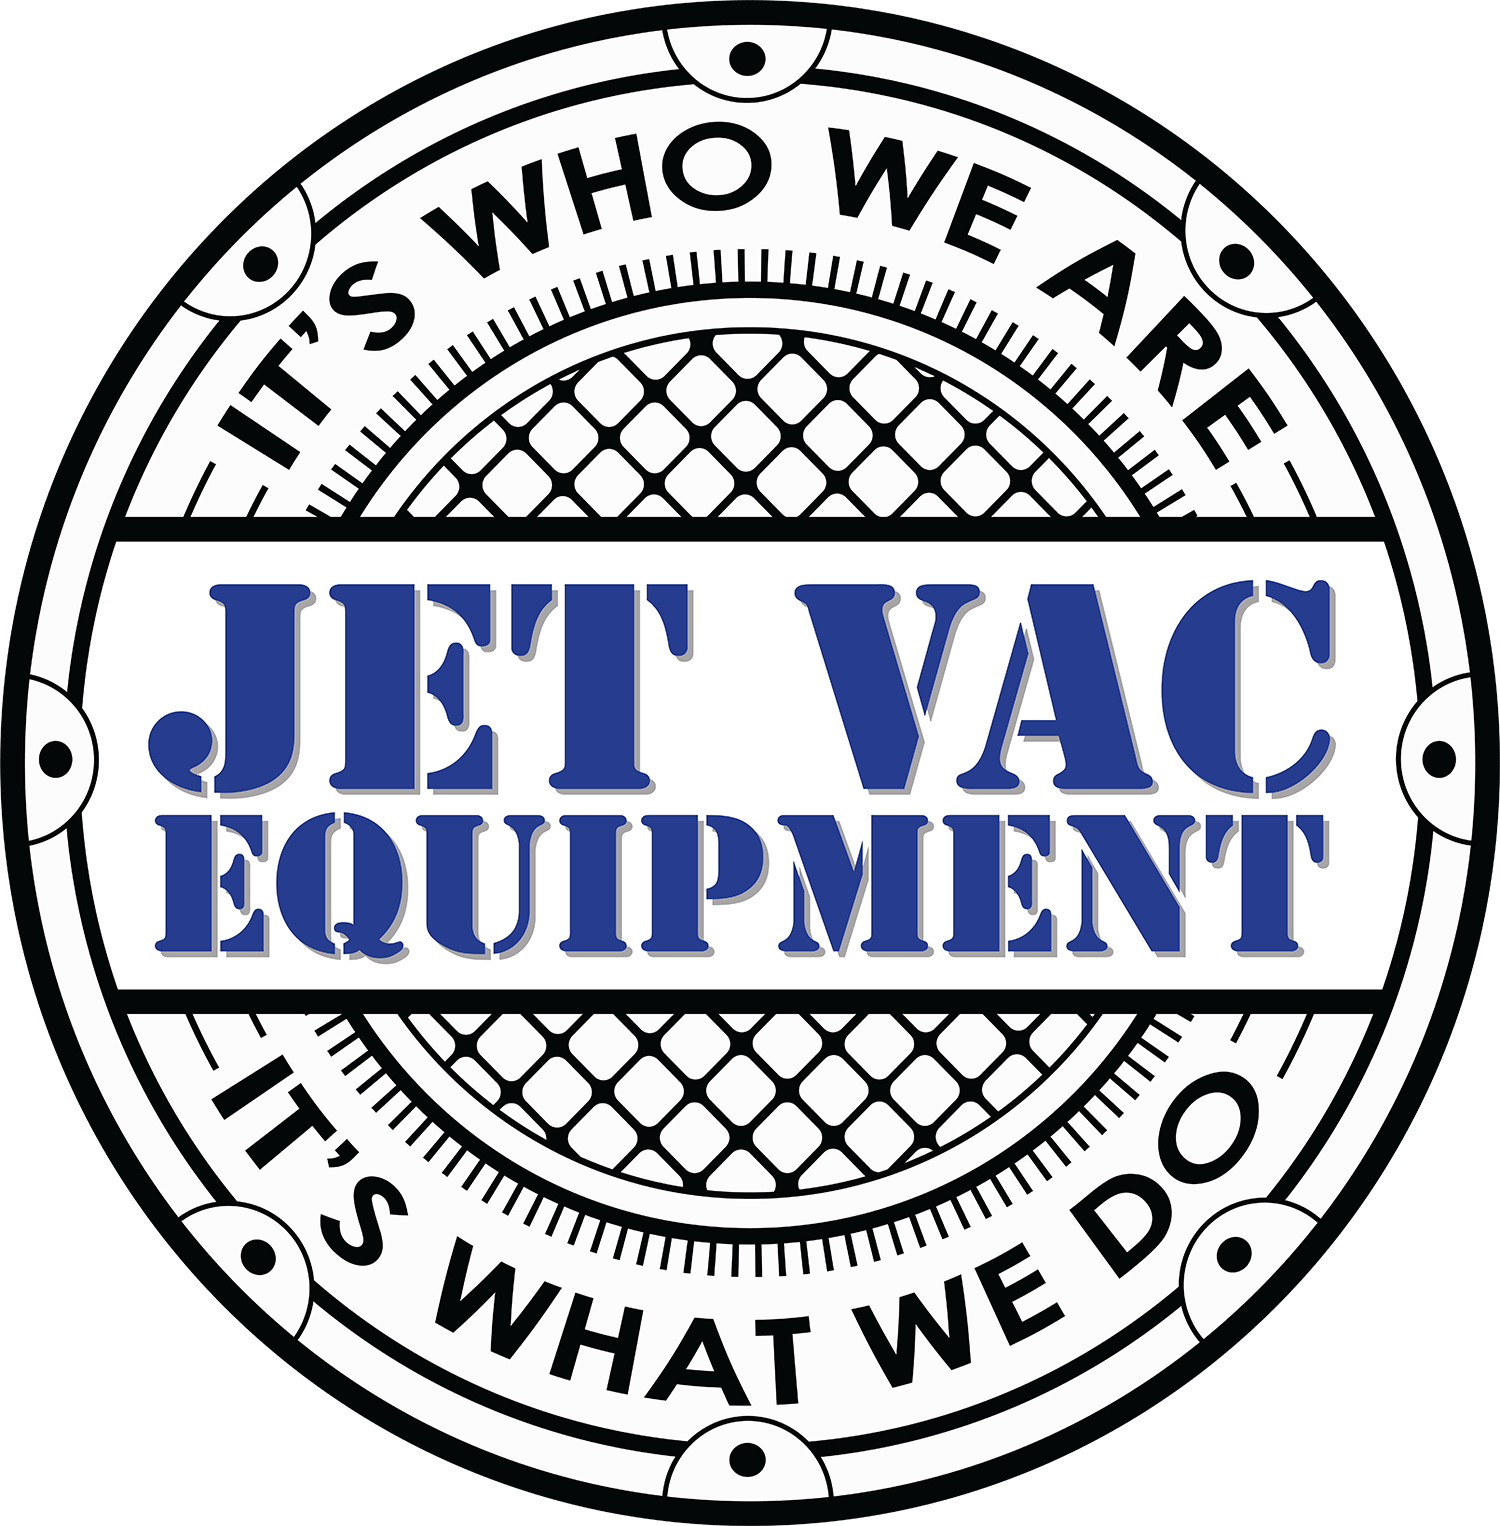 JetVac - It's Who We Are. It's What We Do